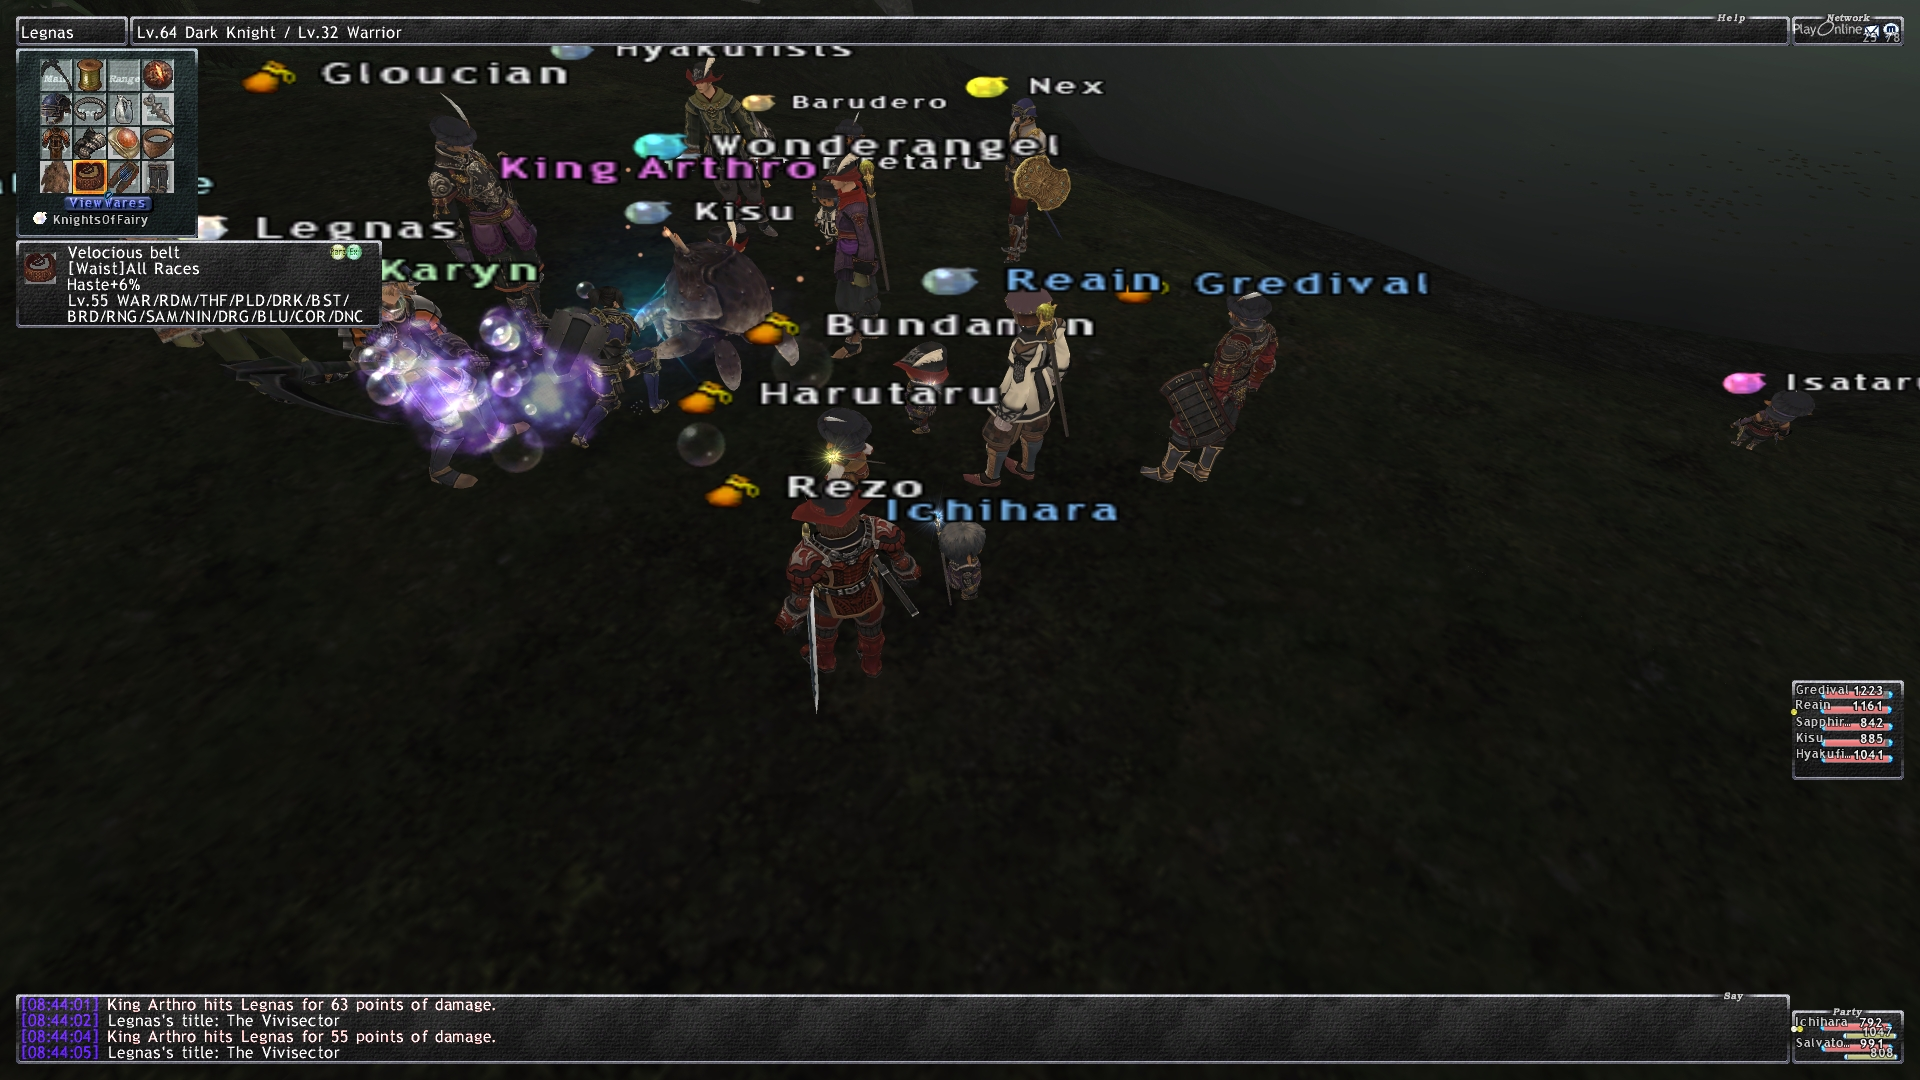 thetruepandagod ffxi gimp or confused or wtf player thread xix sooner started apologies visit xvii fresssssssshhhh slow media good previous clean fight give shits gimpconfusedwtf campaign town gear allowed